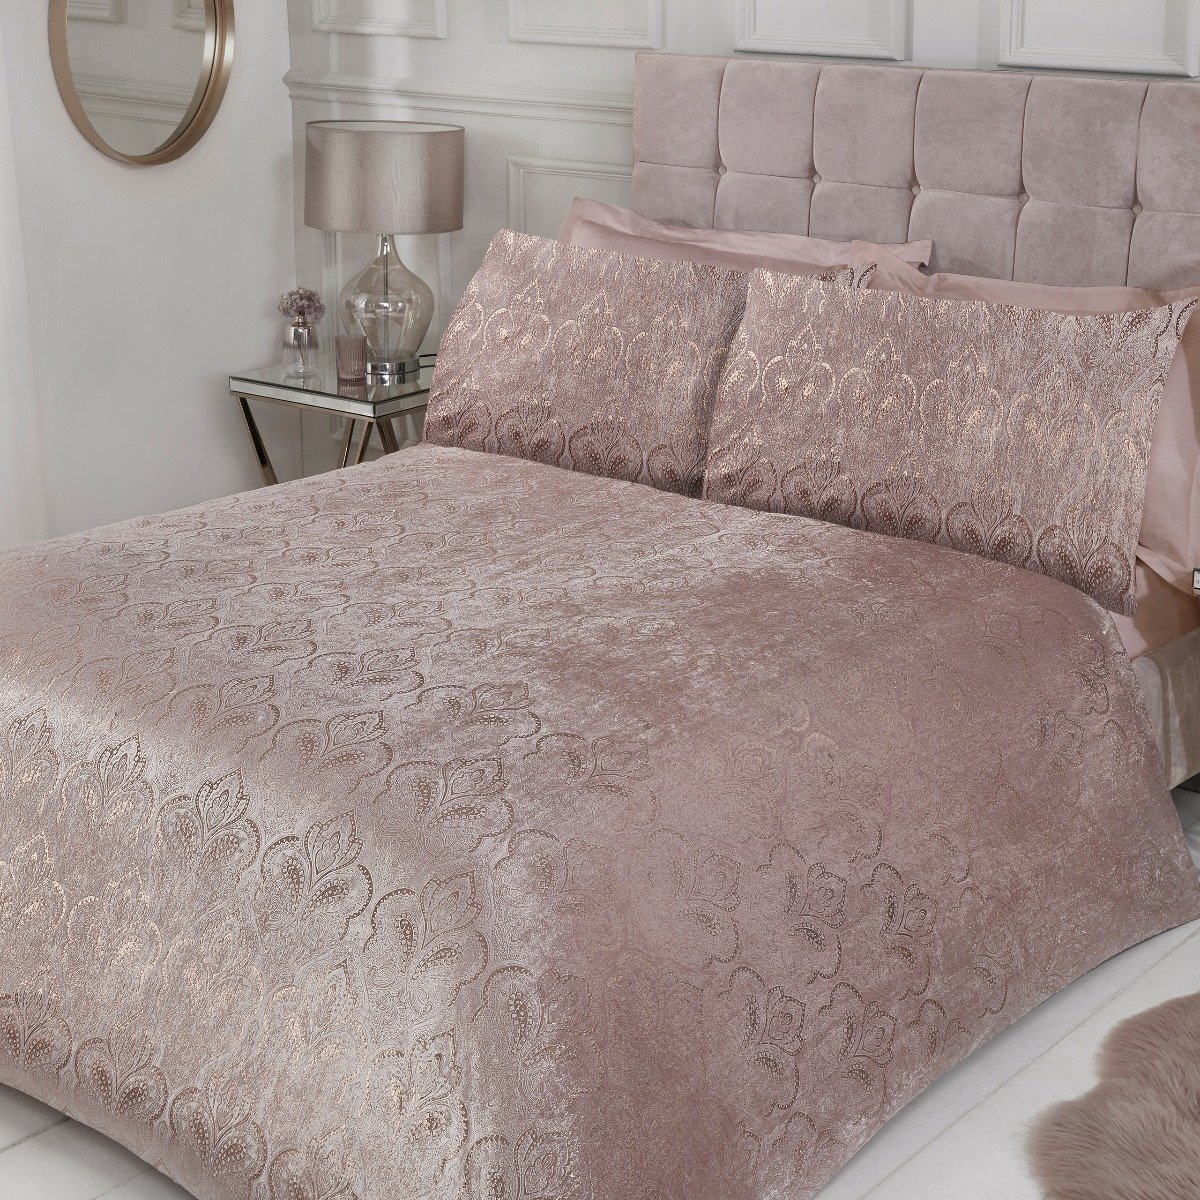 Paisley Bedding - Luxury Duvet Cover and Pillowcase Set